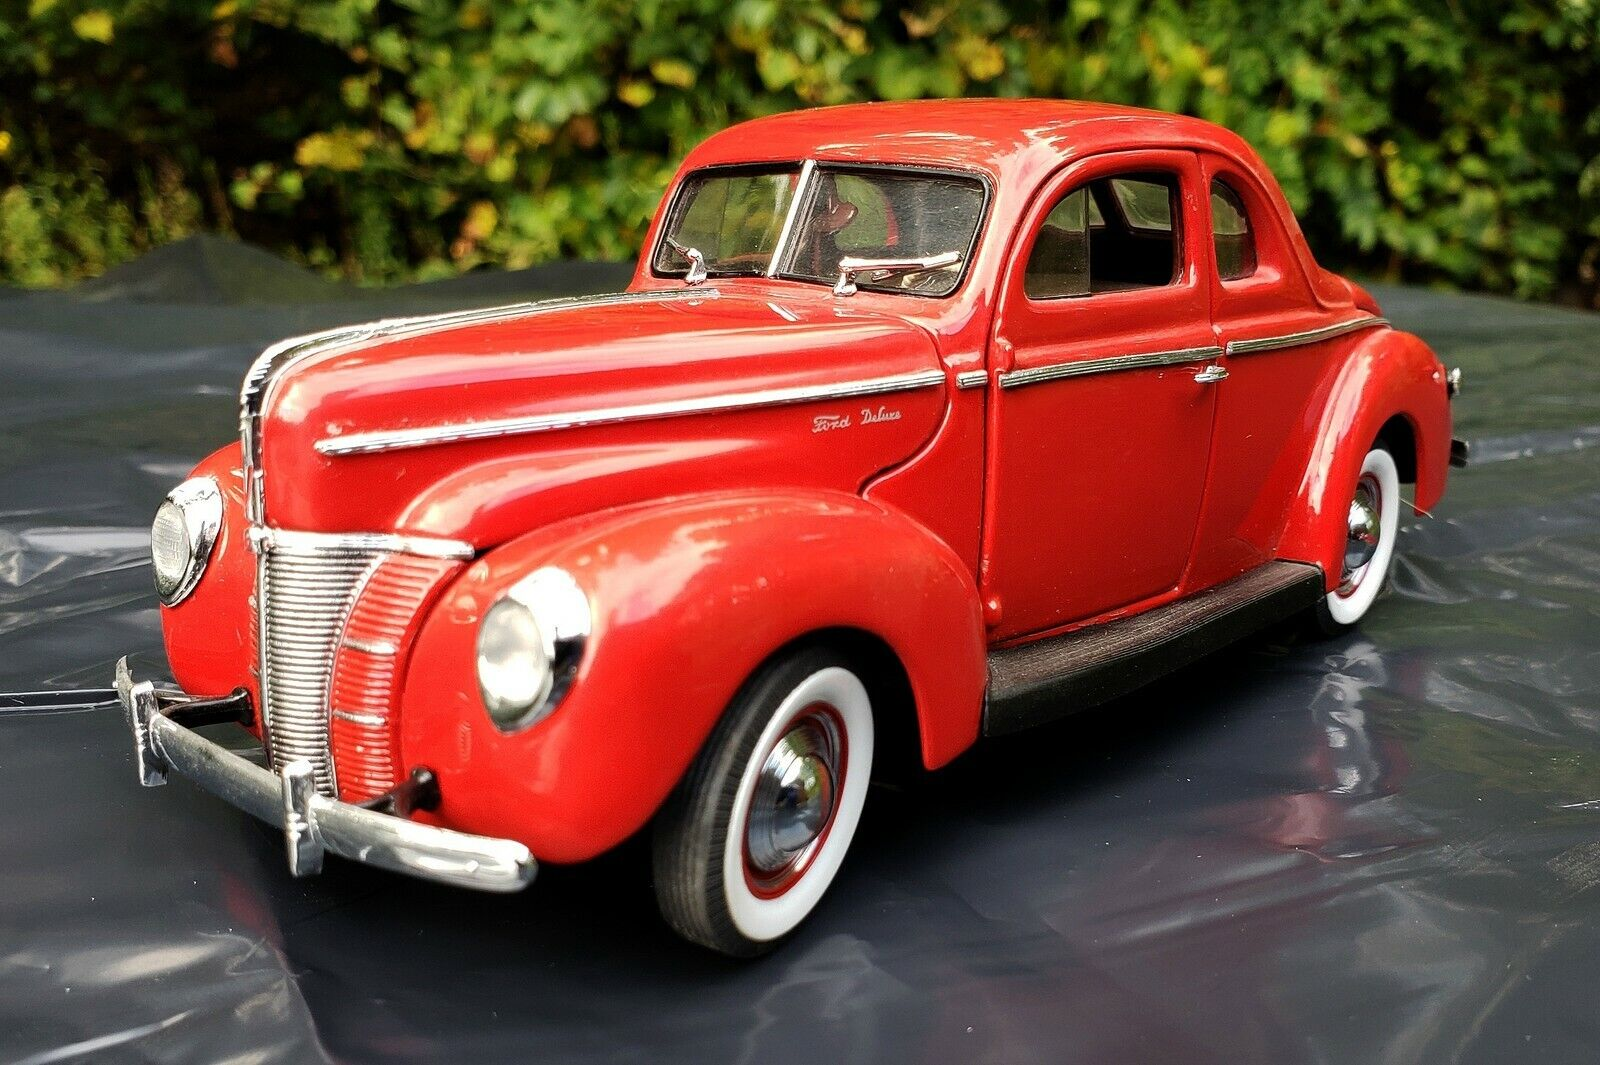 1940 FORD DELUXE COUPE 1 24 DANBURY MINT DIE CAST